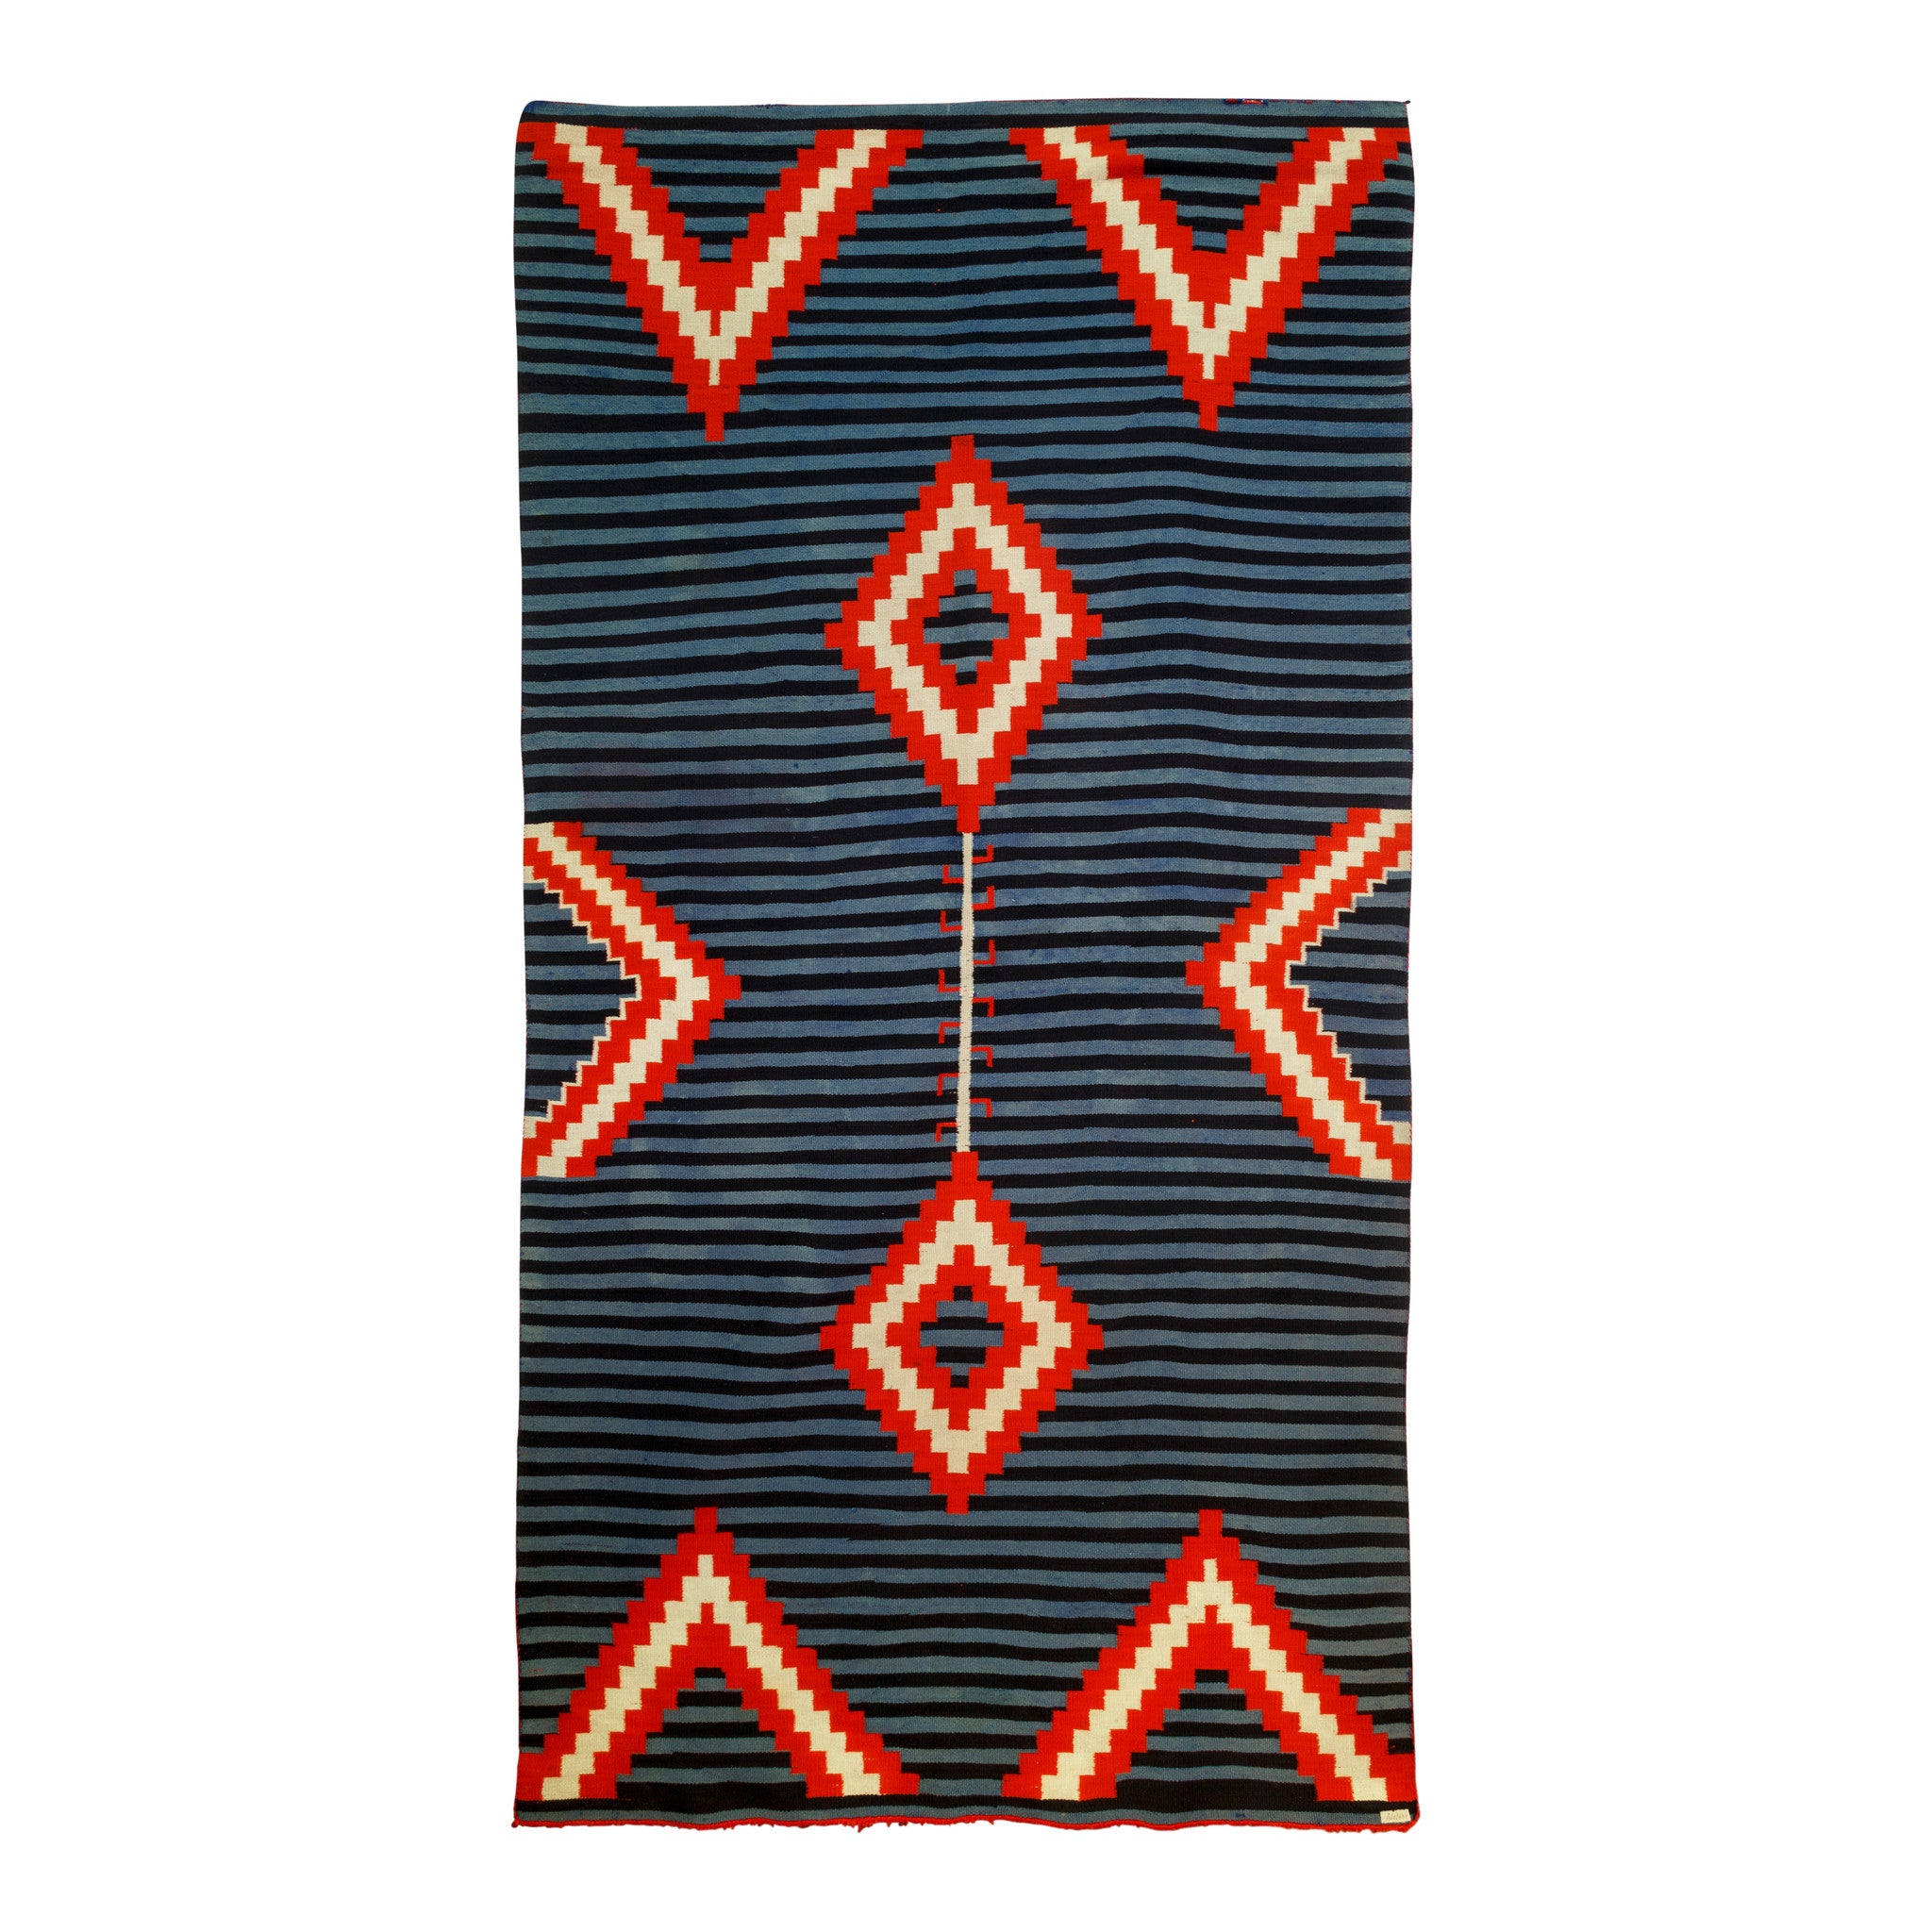 Germantown Moki 8' +, germantowns, navajo, weavings